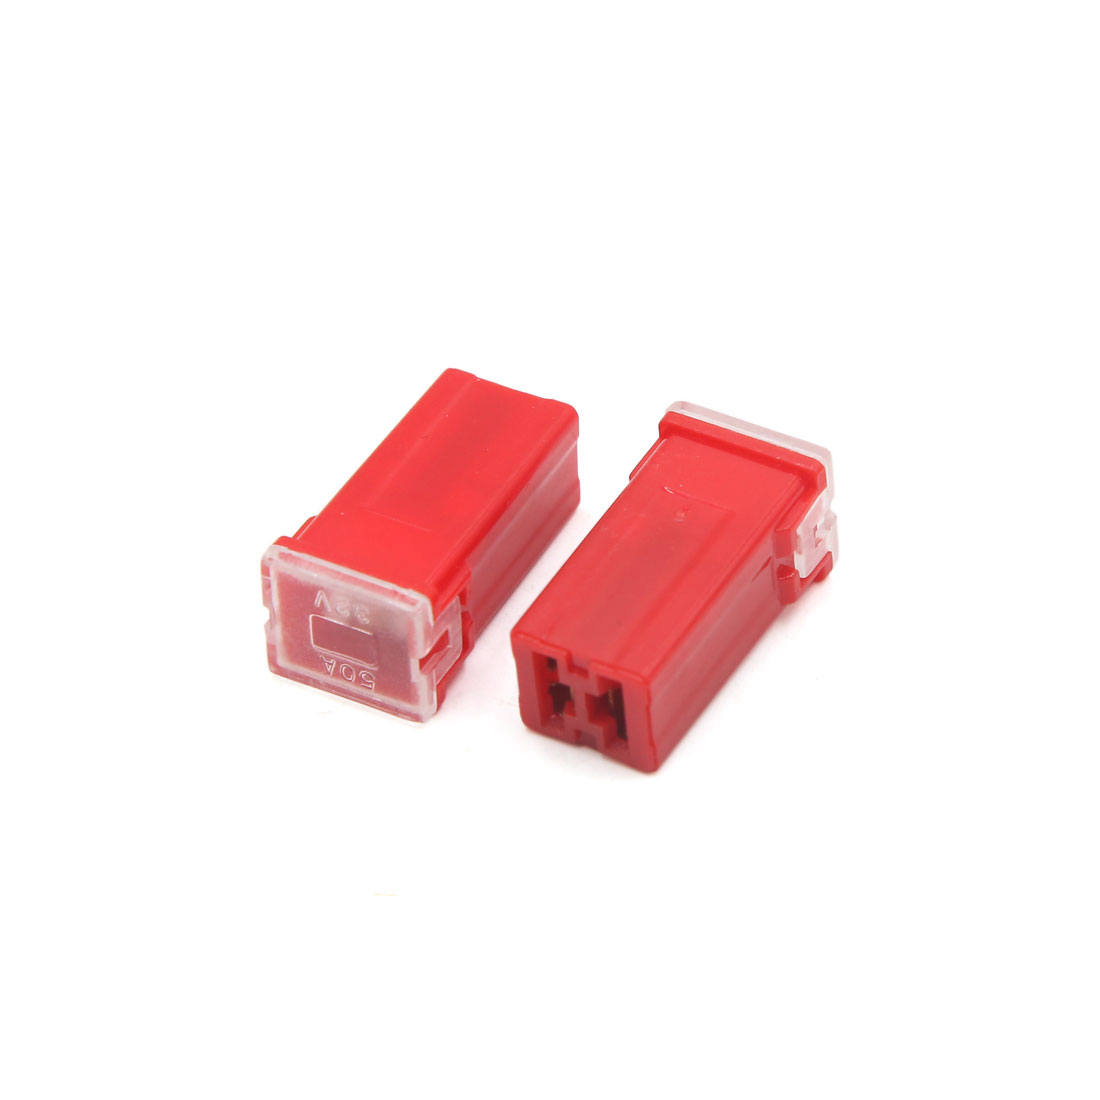 10Pcs 50A 32V Red Plastic Mini Push-in Type Female PAL Cartridge Fuses for Car - image 1 de 3